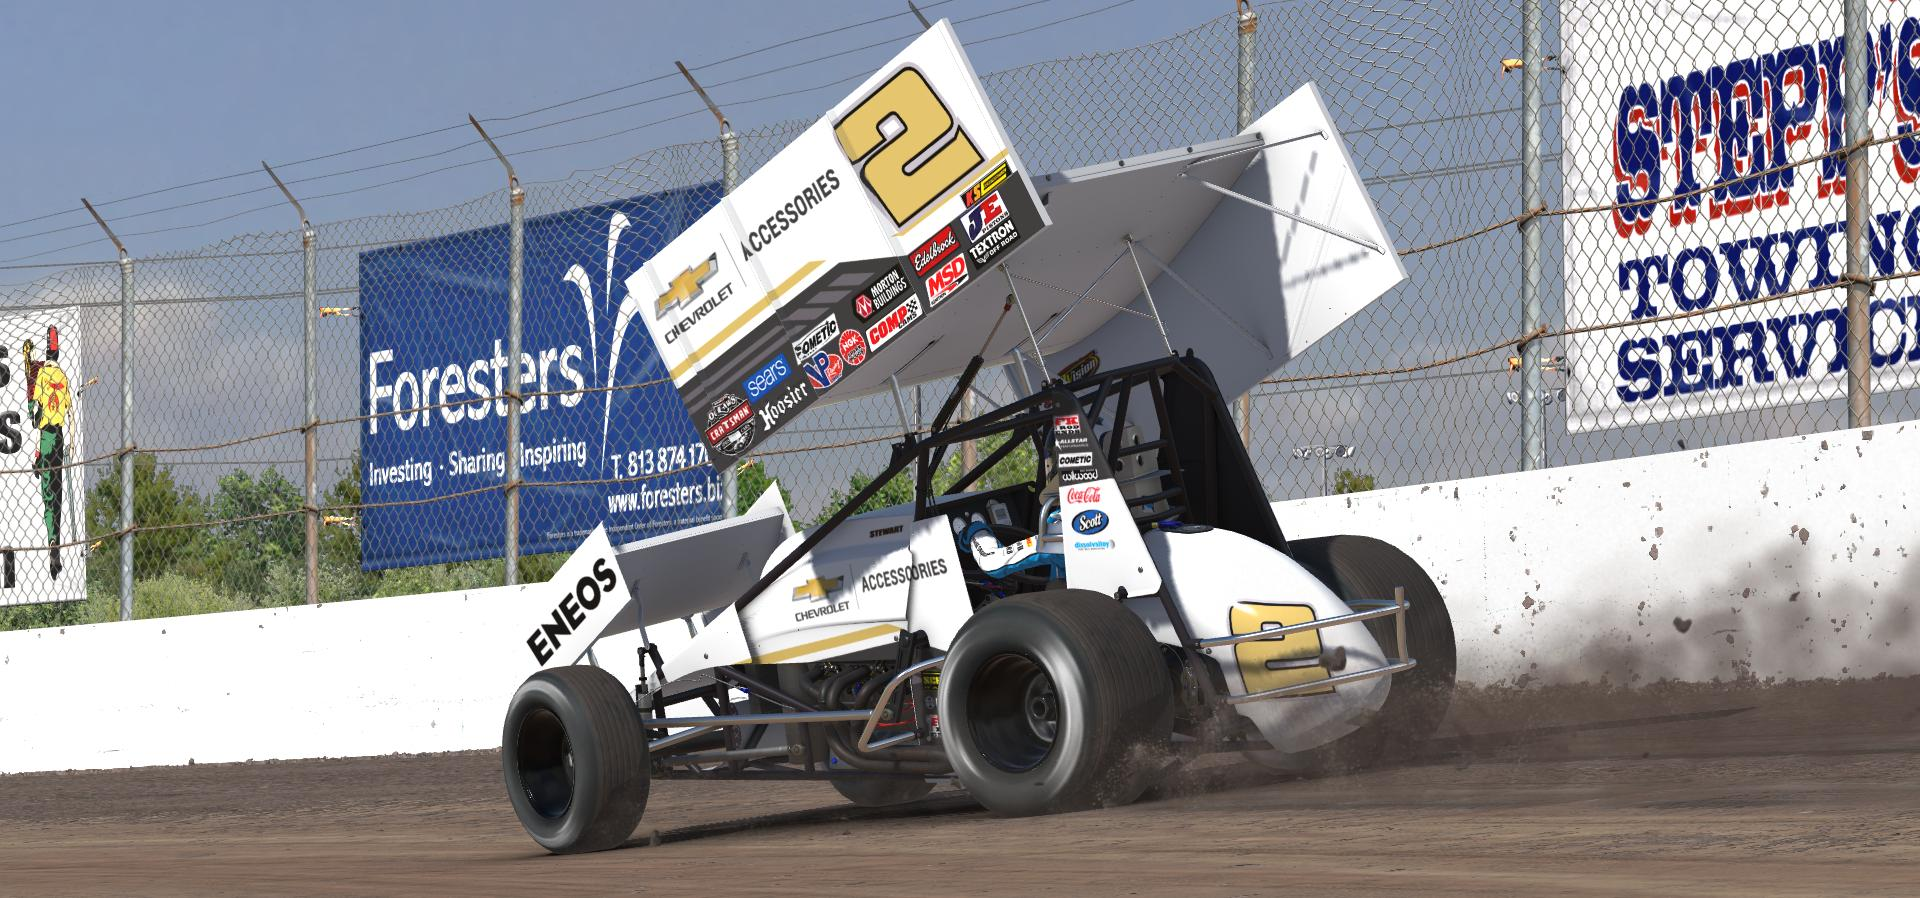 Preview of 2018 Shane Stewart Chevrolet Accessories Dirt Sprint Car by Doug DeNise